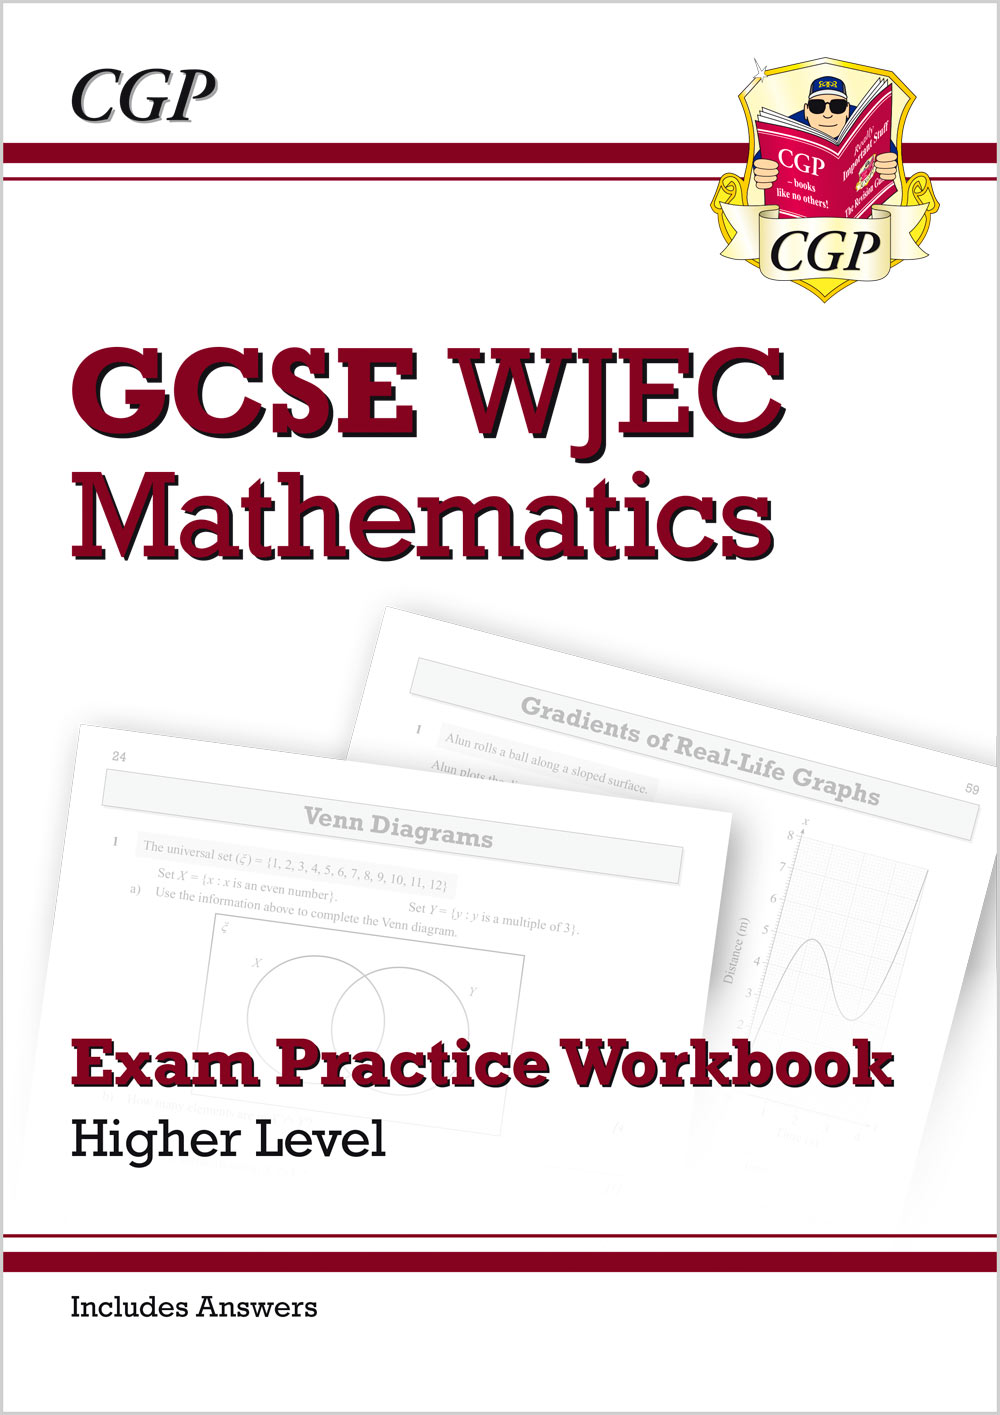 MWHQ41 - WJEC GCSE Maths Exam Practice Workbook: Higher (includes Answers)